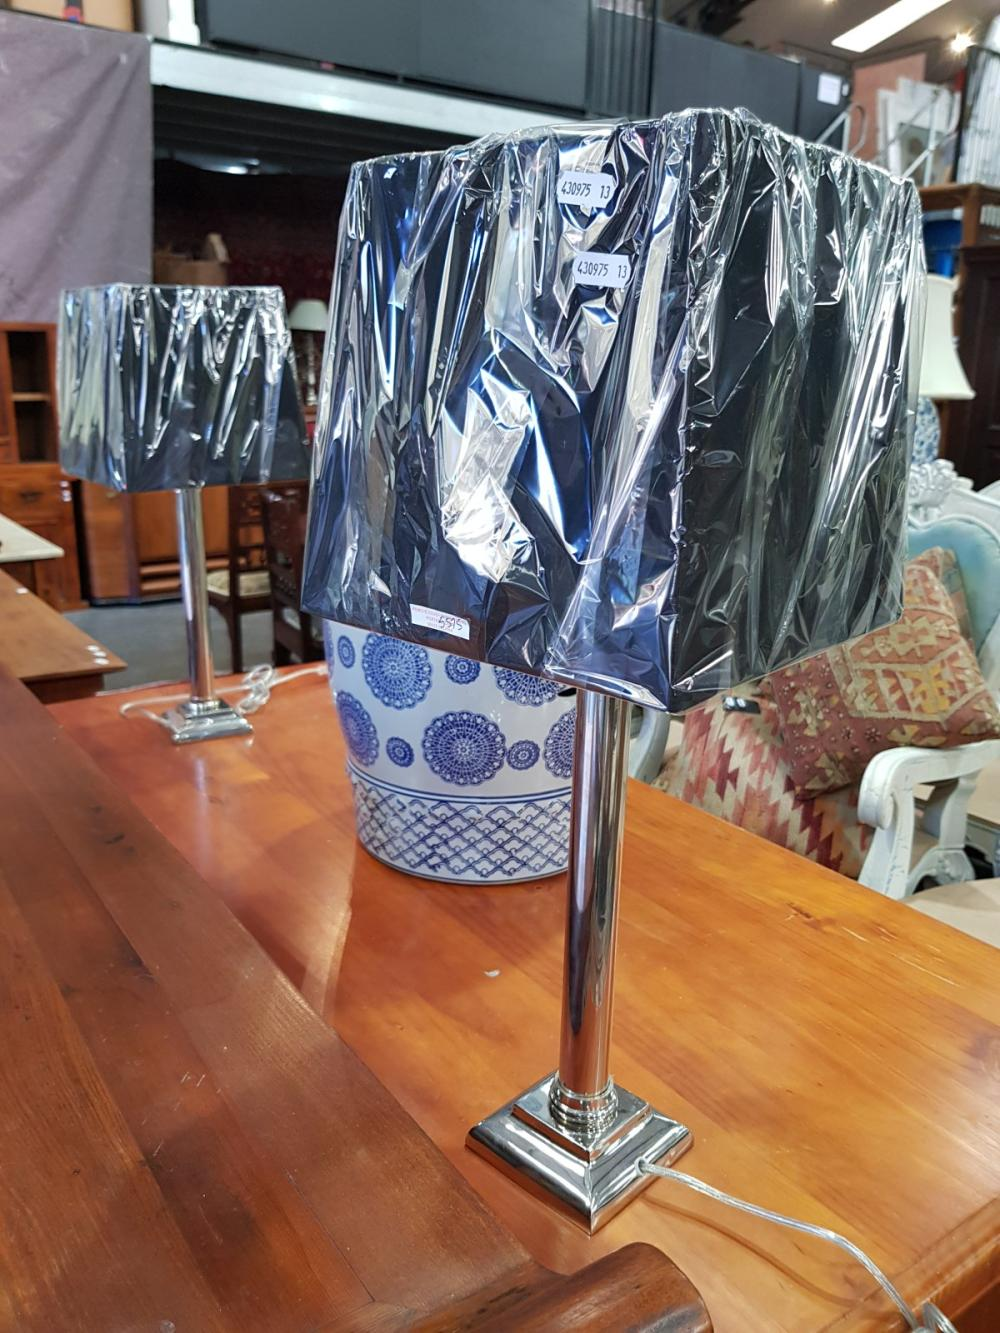 Pair of Chrome Column Form Table Lamps (5575)